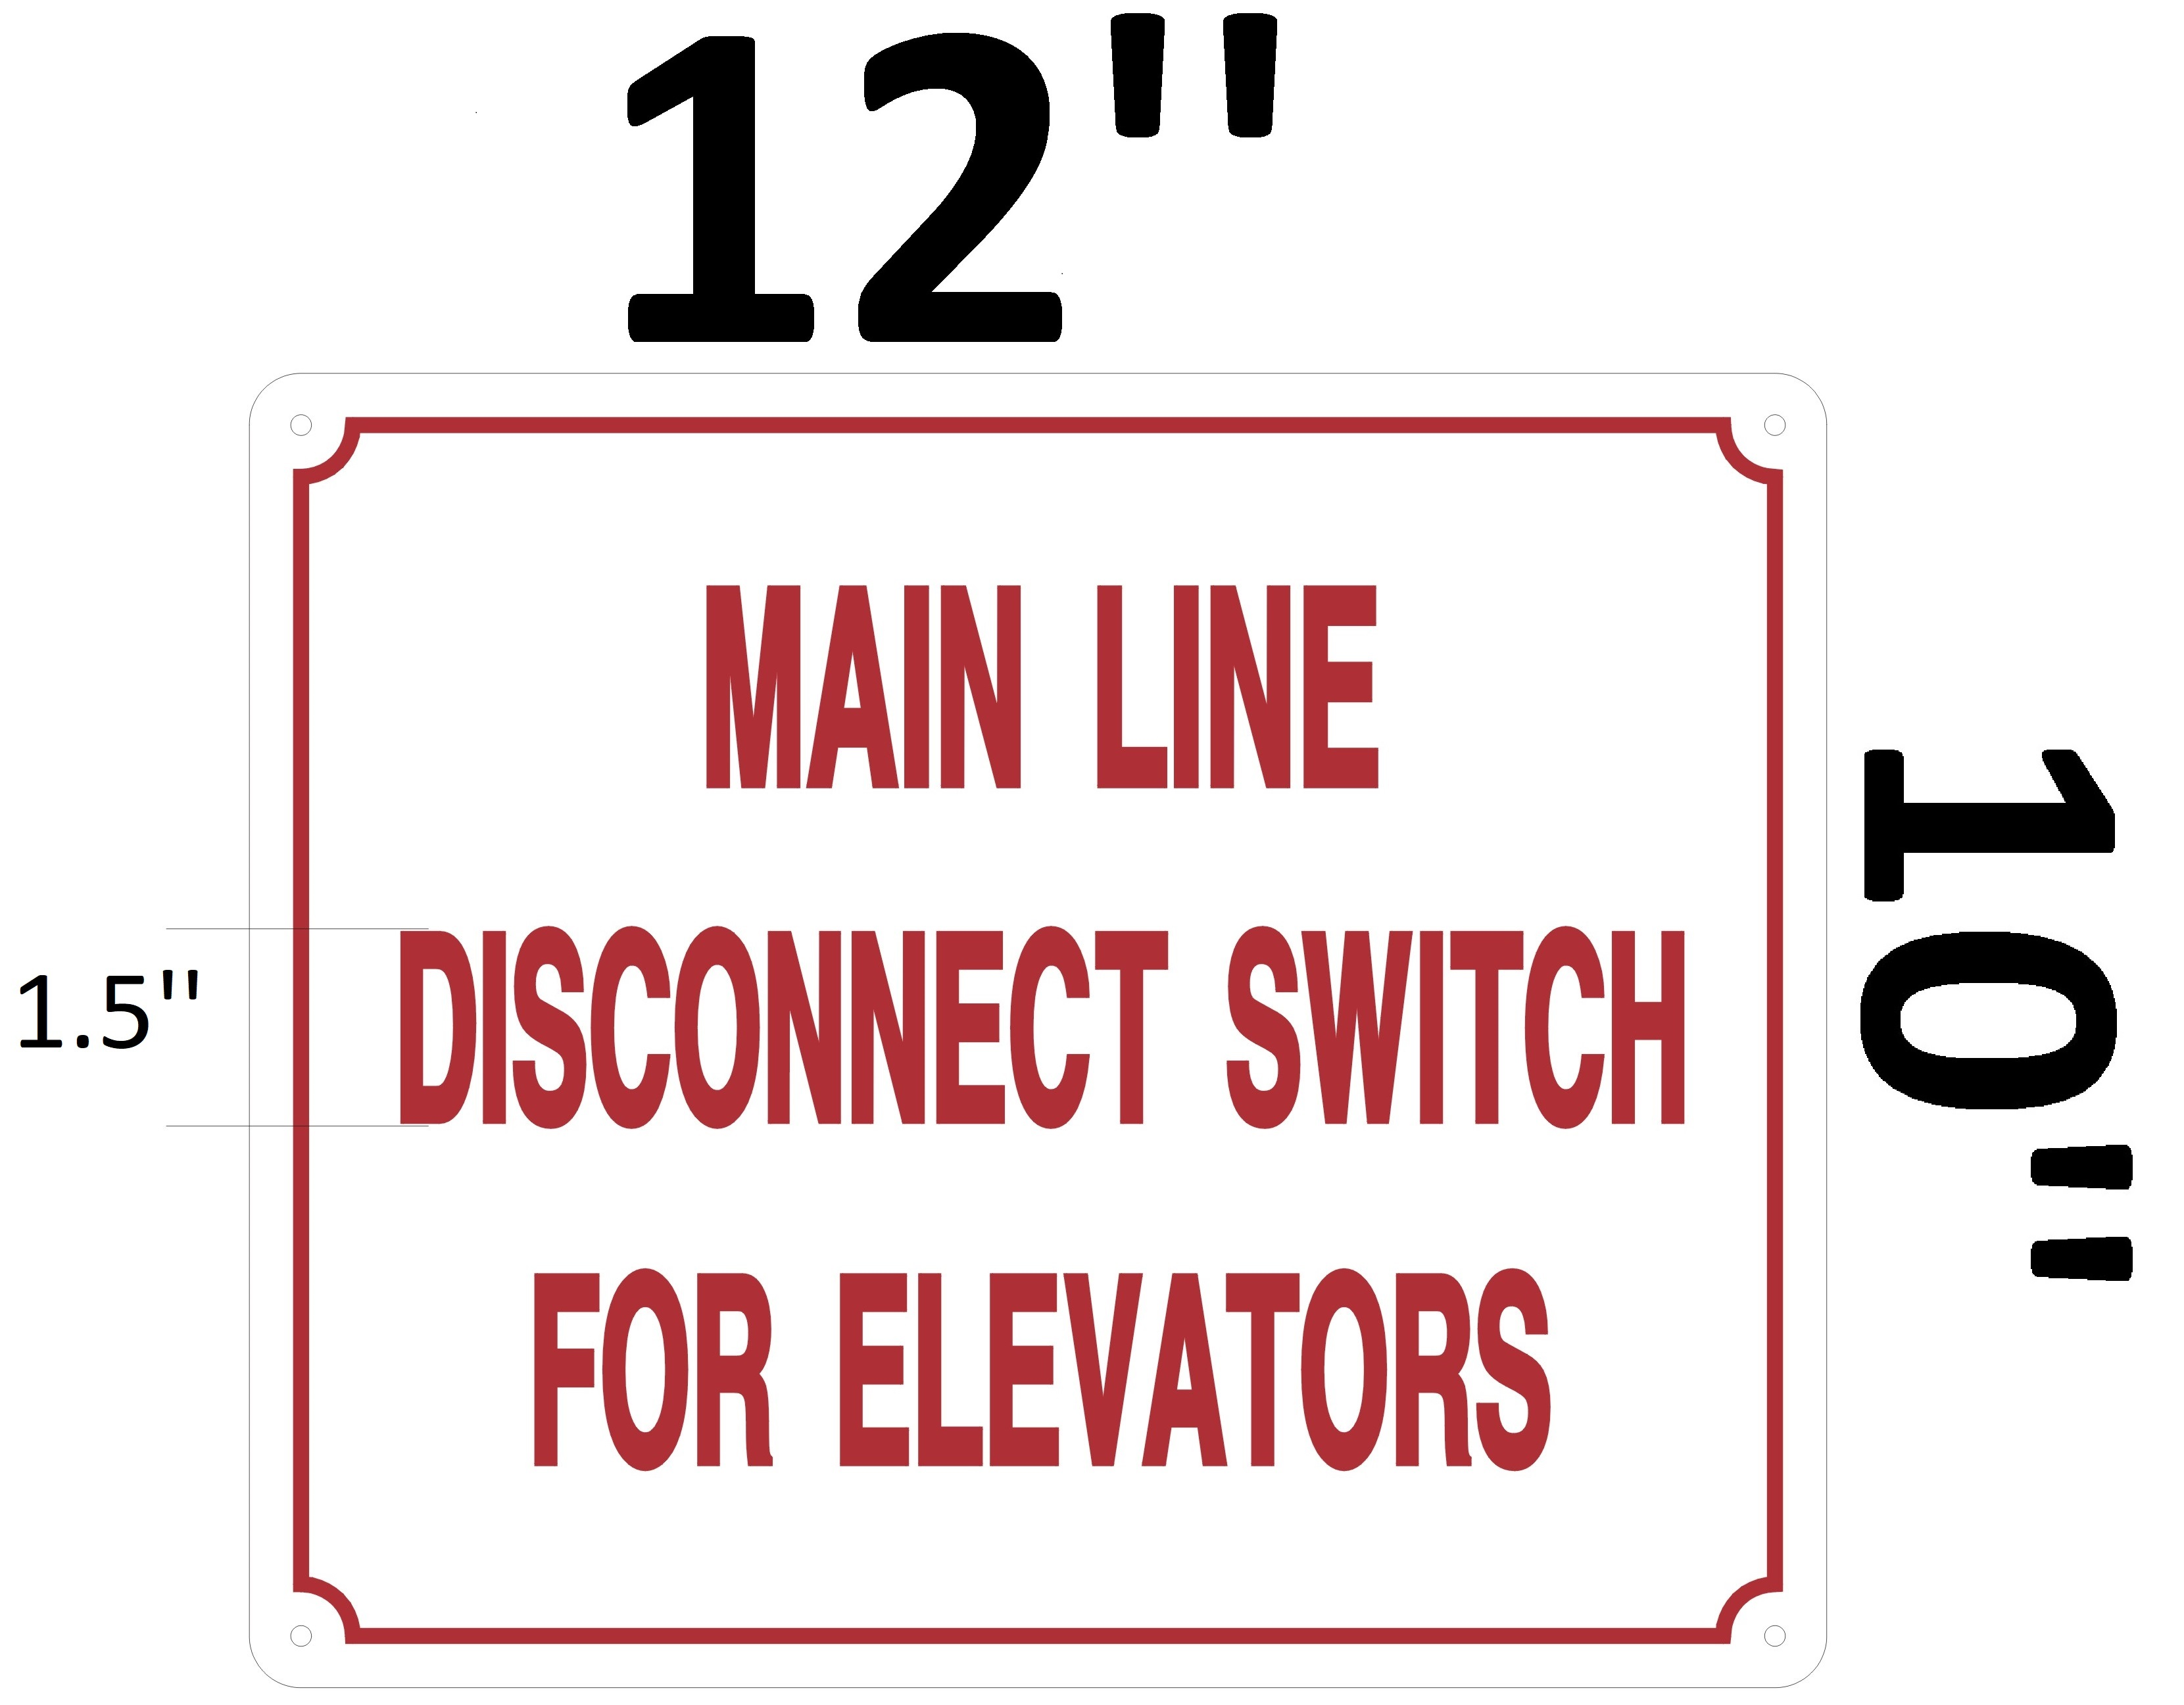 main line disconnect switch for elevator sign hpd aluminum sign